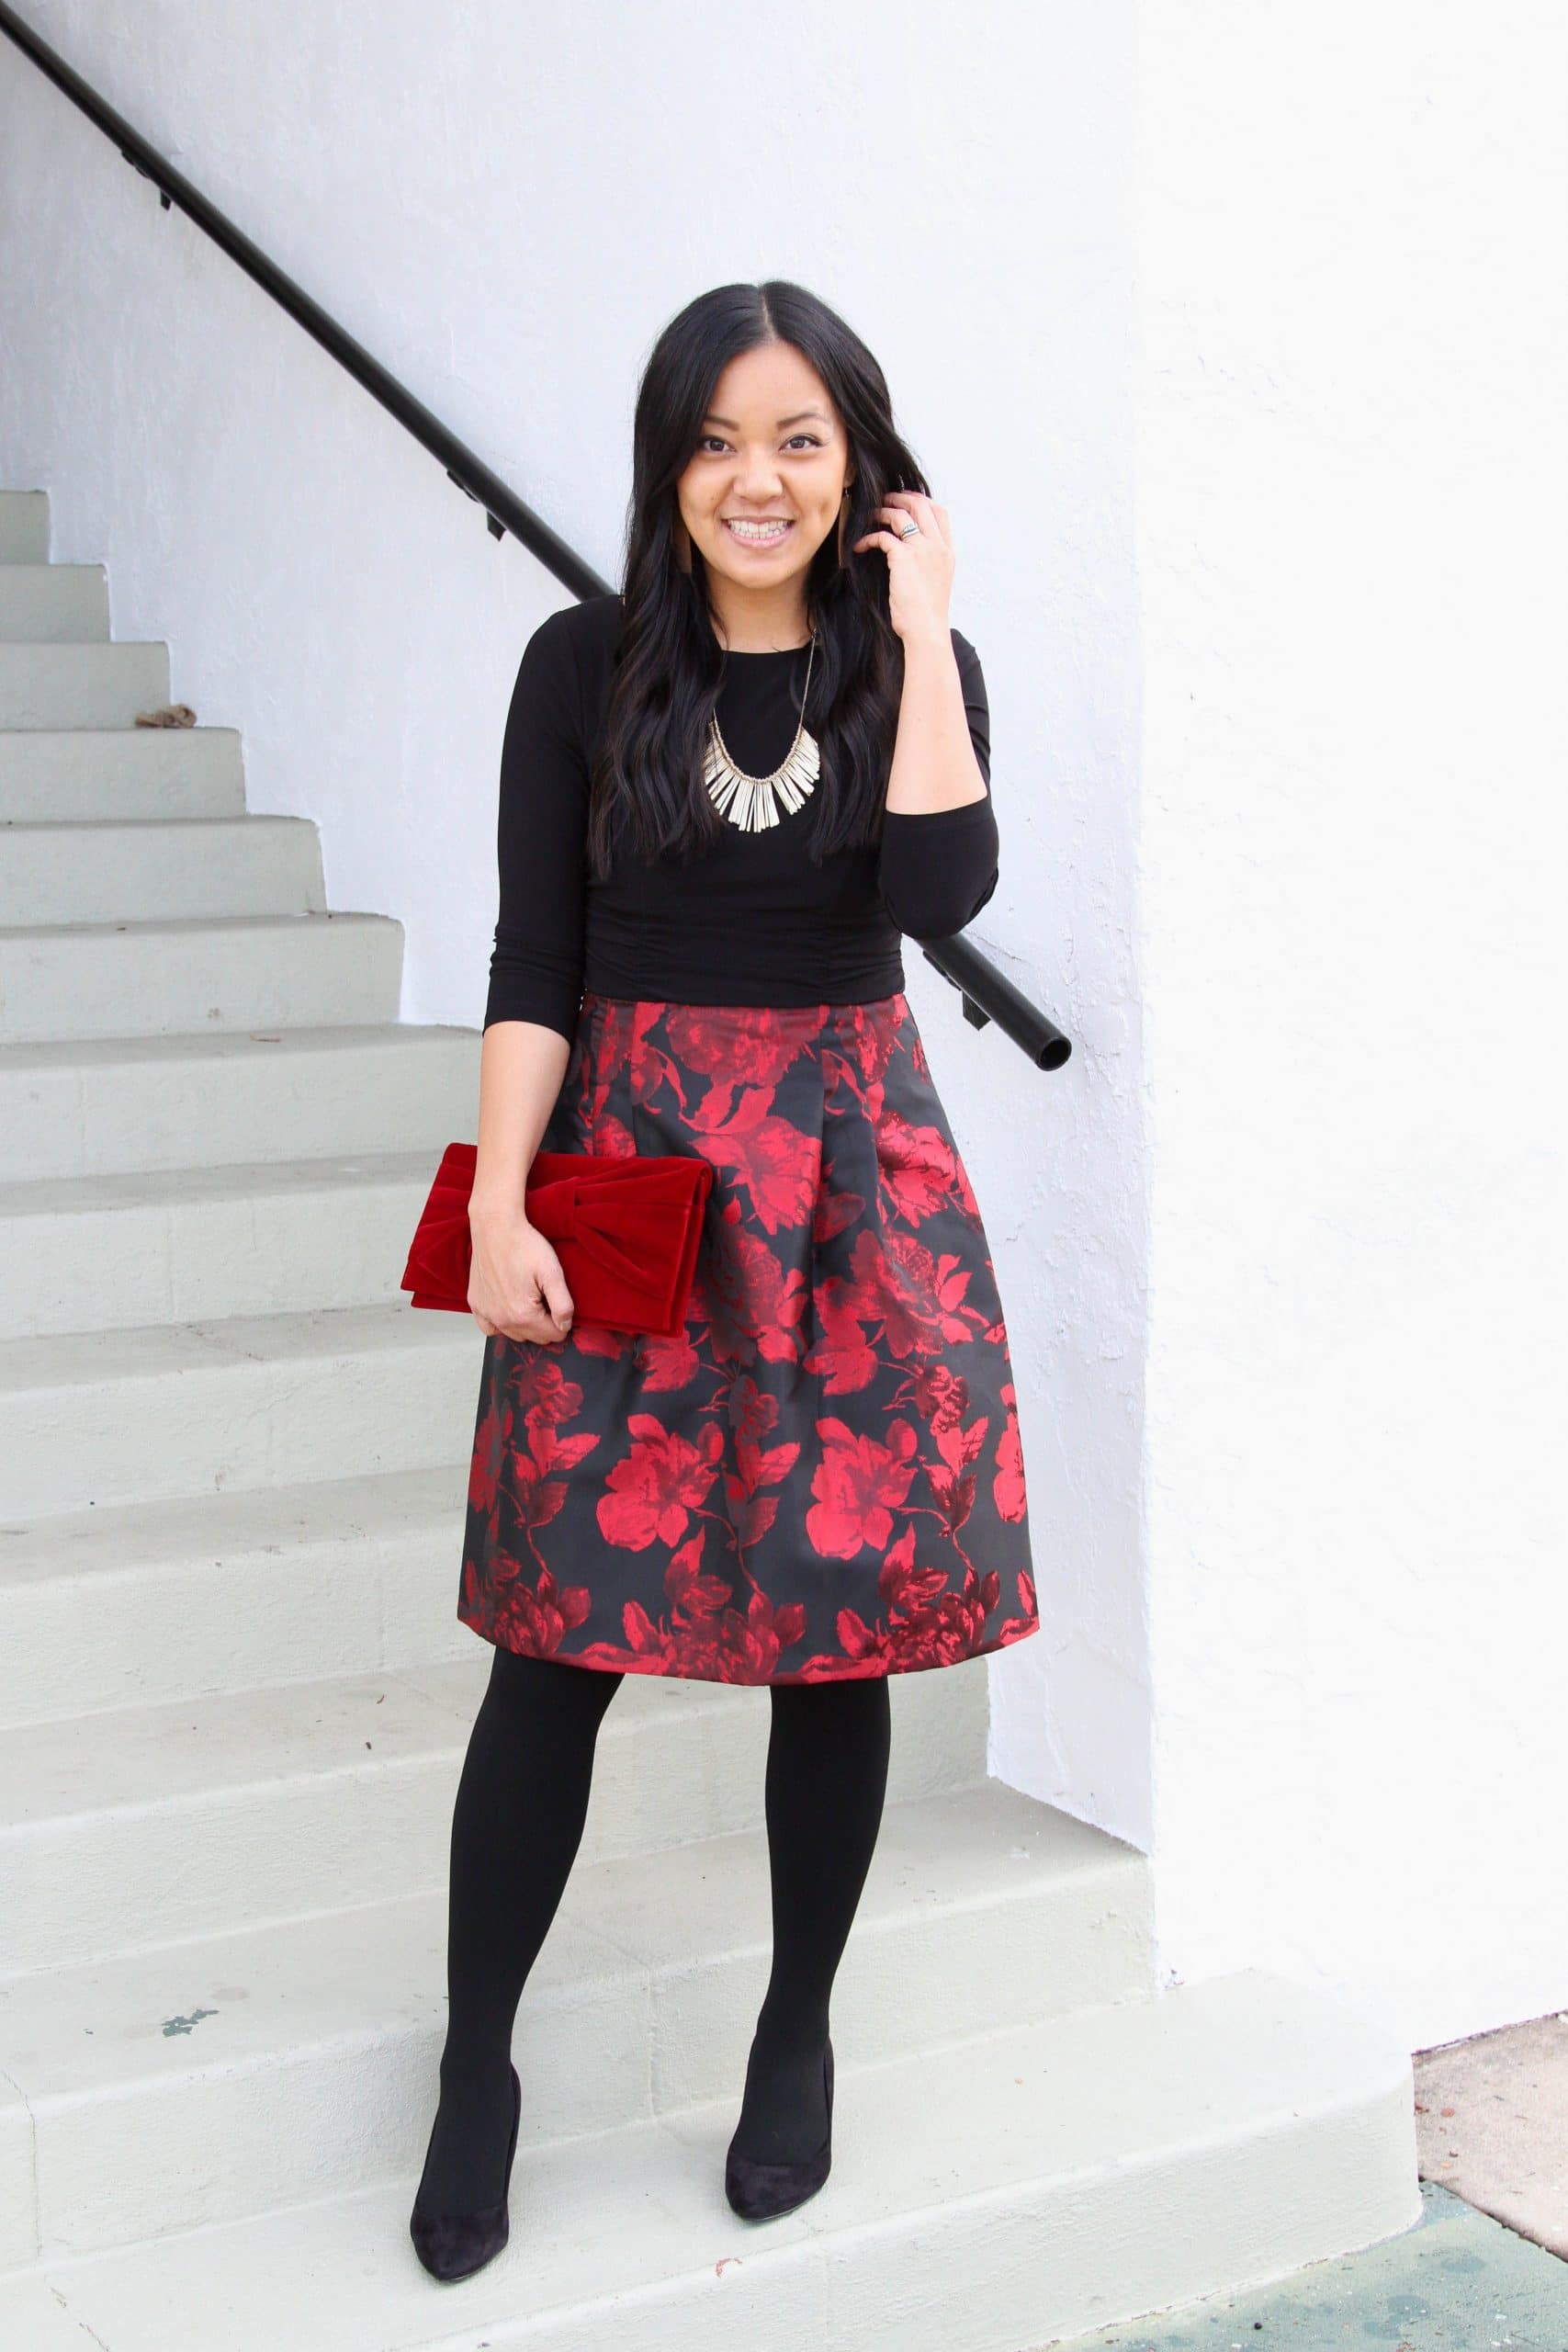 red and black floral dress + black tights + black flats